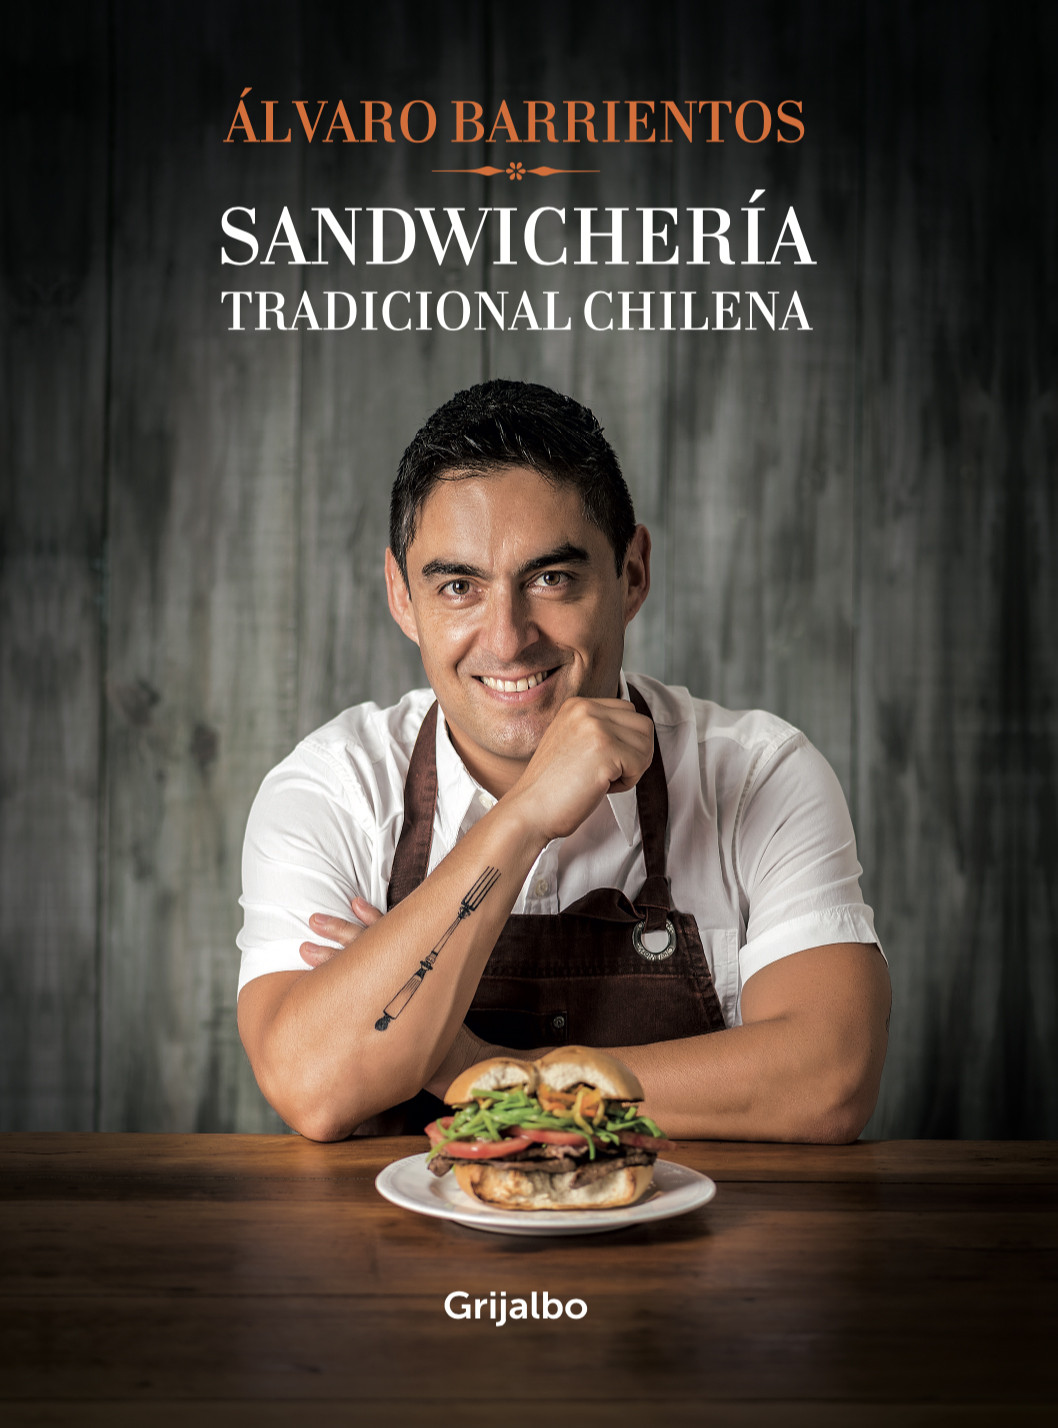 Sandwichería tradicional chilena